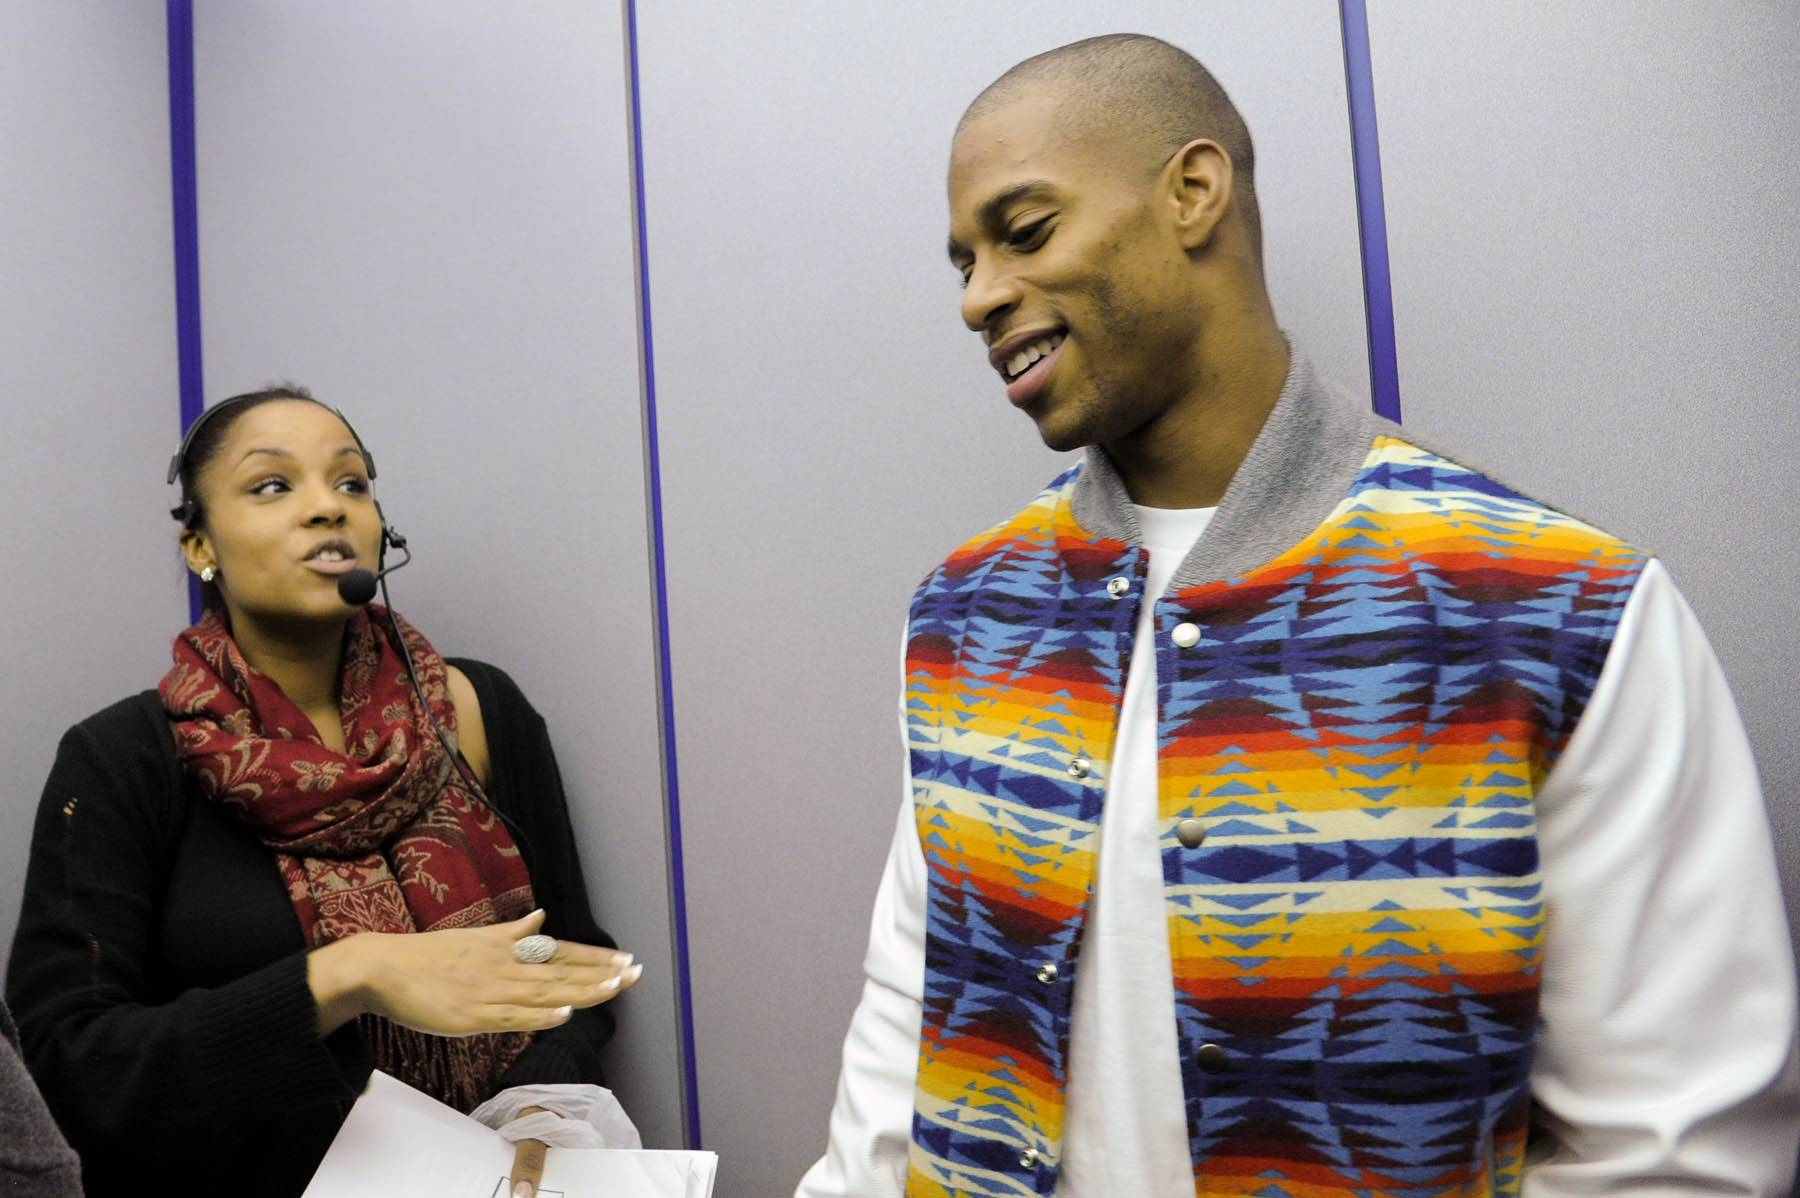 Tell Me About It - NY Giants wide receiver Victor Cruz talks with show producer Stephanie at 106 & Park, January 26, 2012. (Photo: John Ricard / BET)